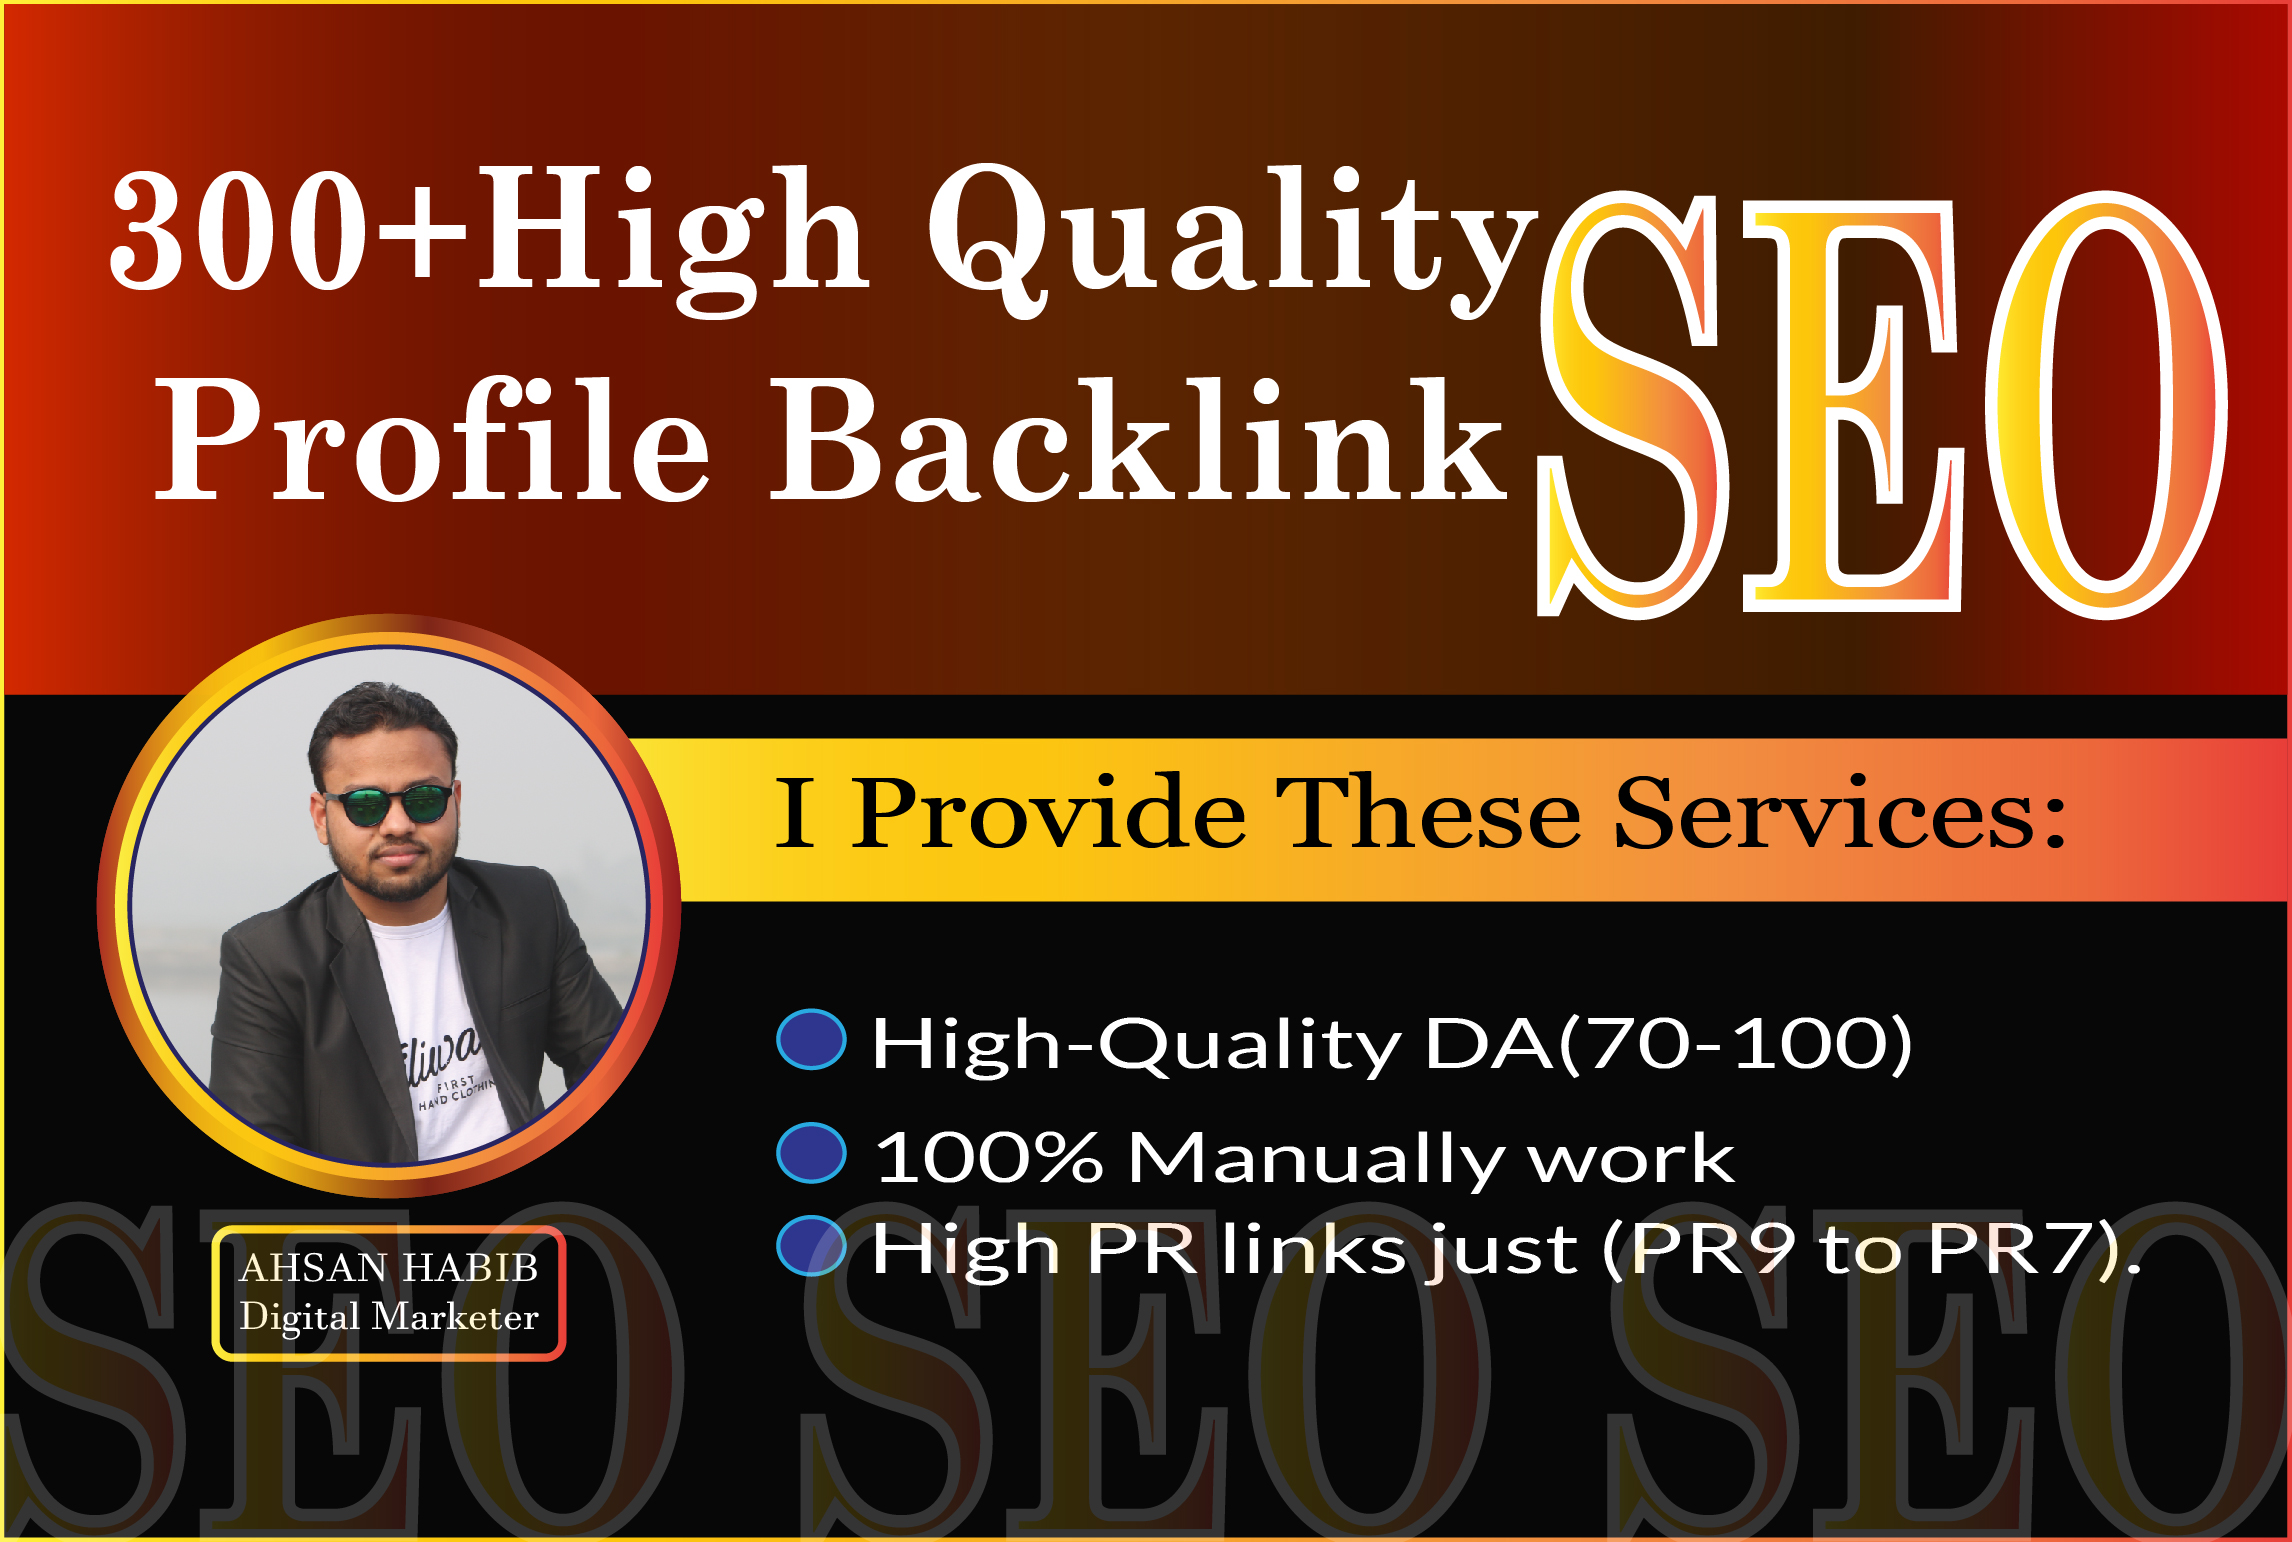 I will create 100+ HQ Profile Backlink SEO manually